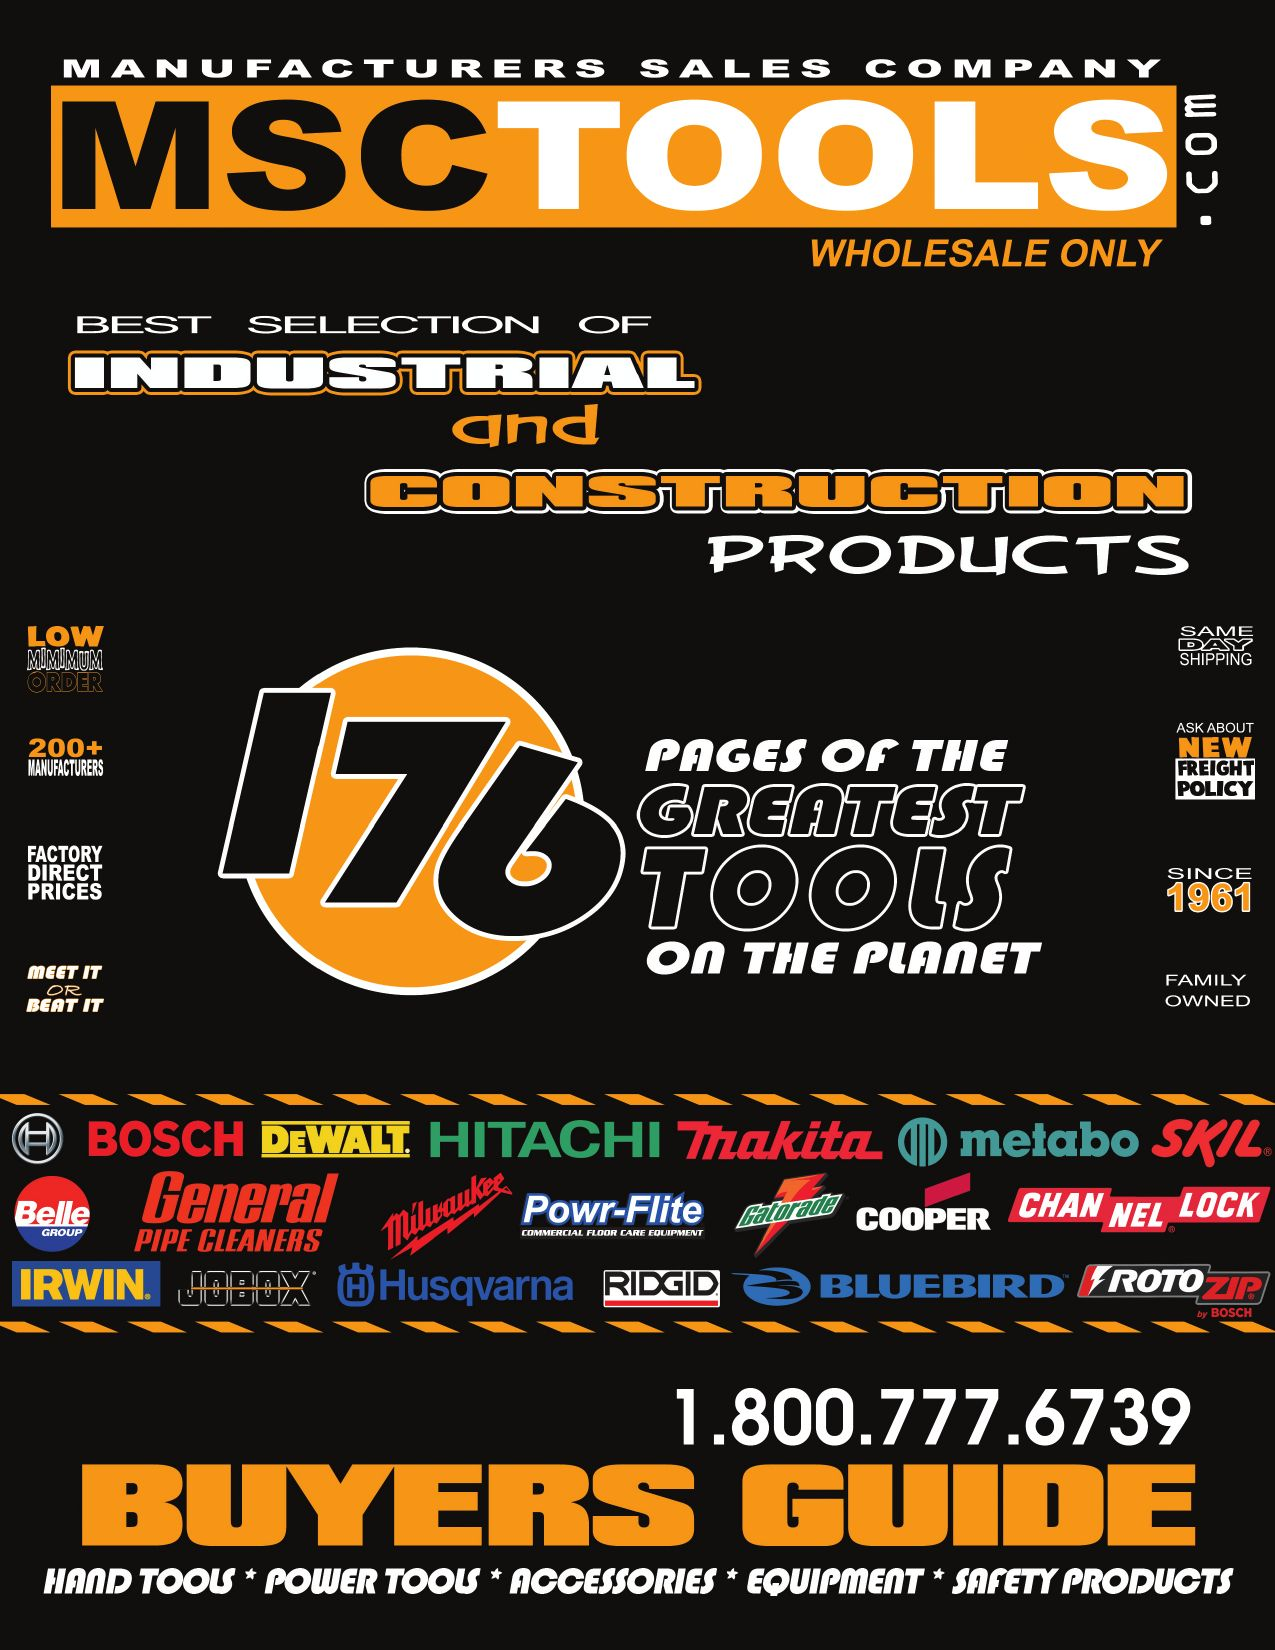 Msctools Catalog 2009 By Stacie Gerber Issuu Circuit Breaker Sc1 Slot Rocker 5a